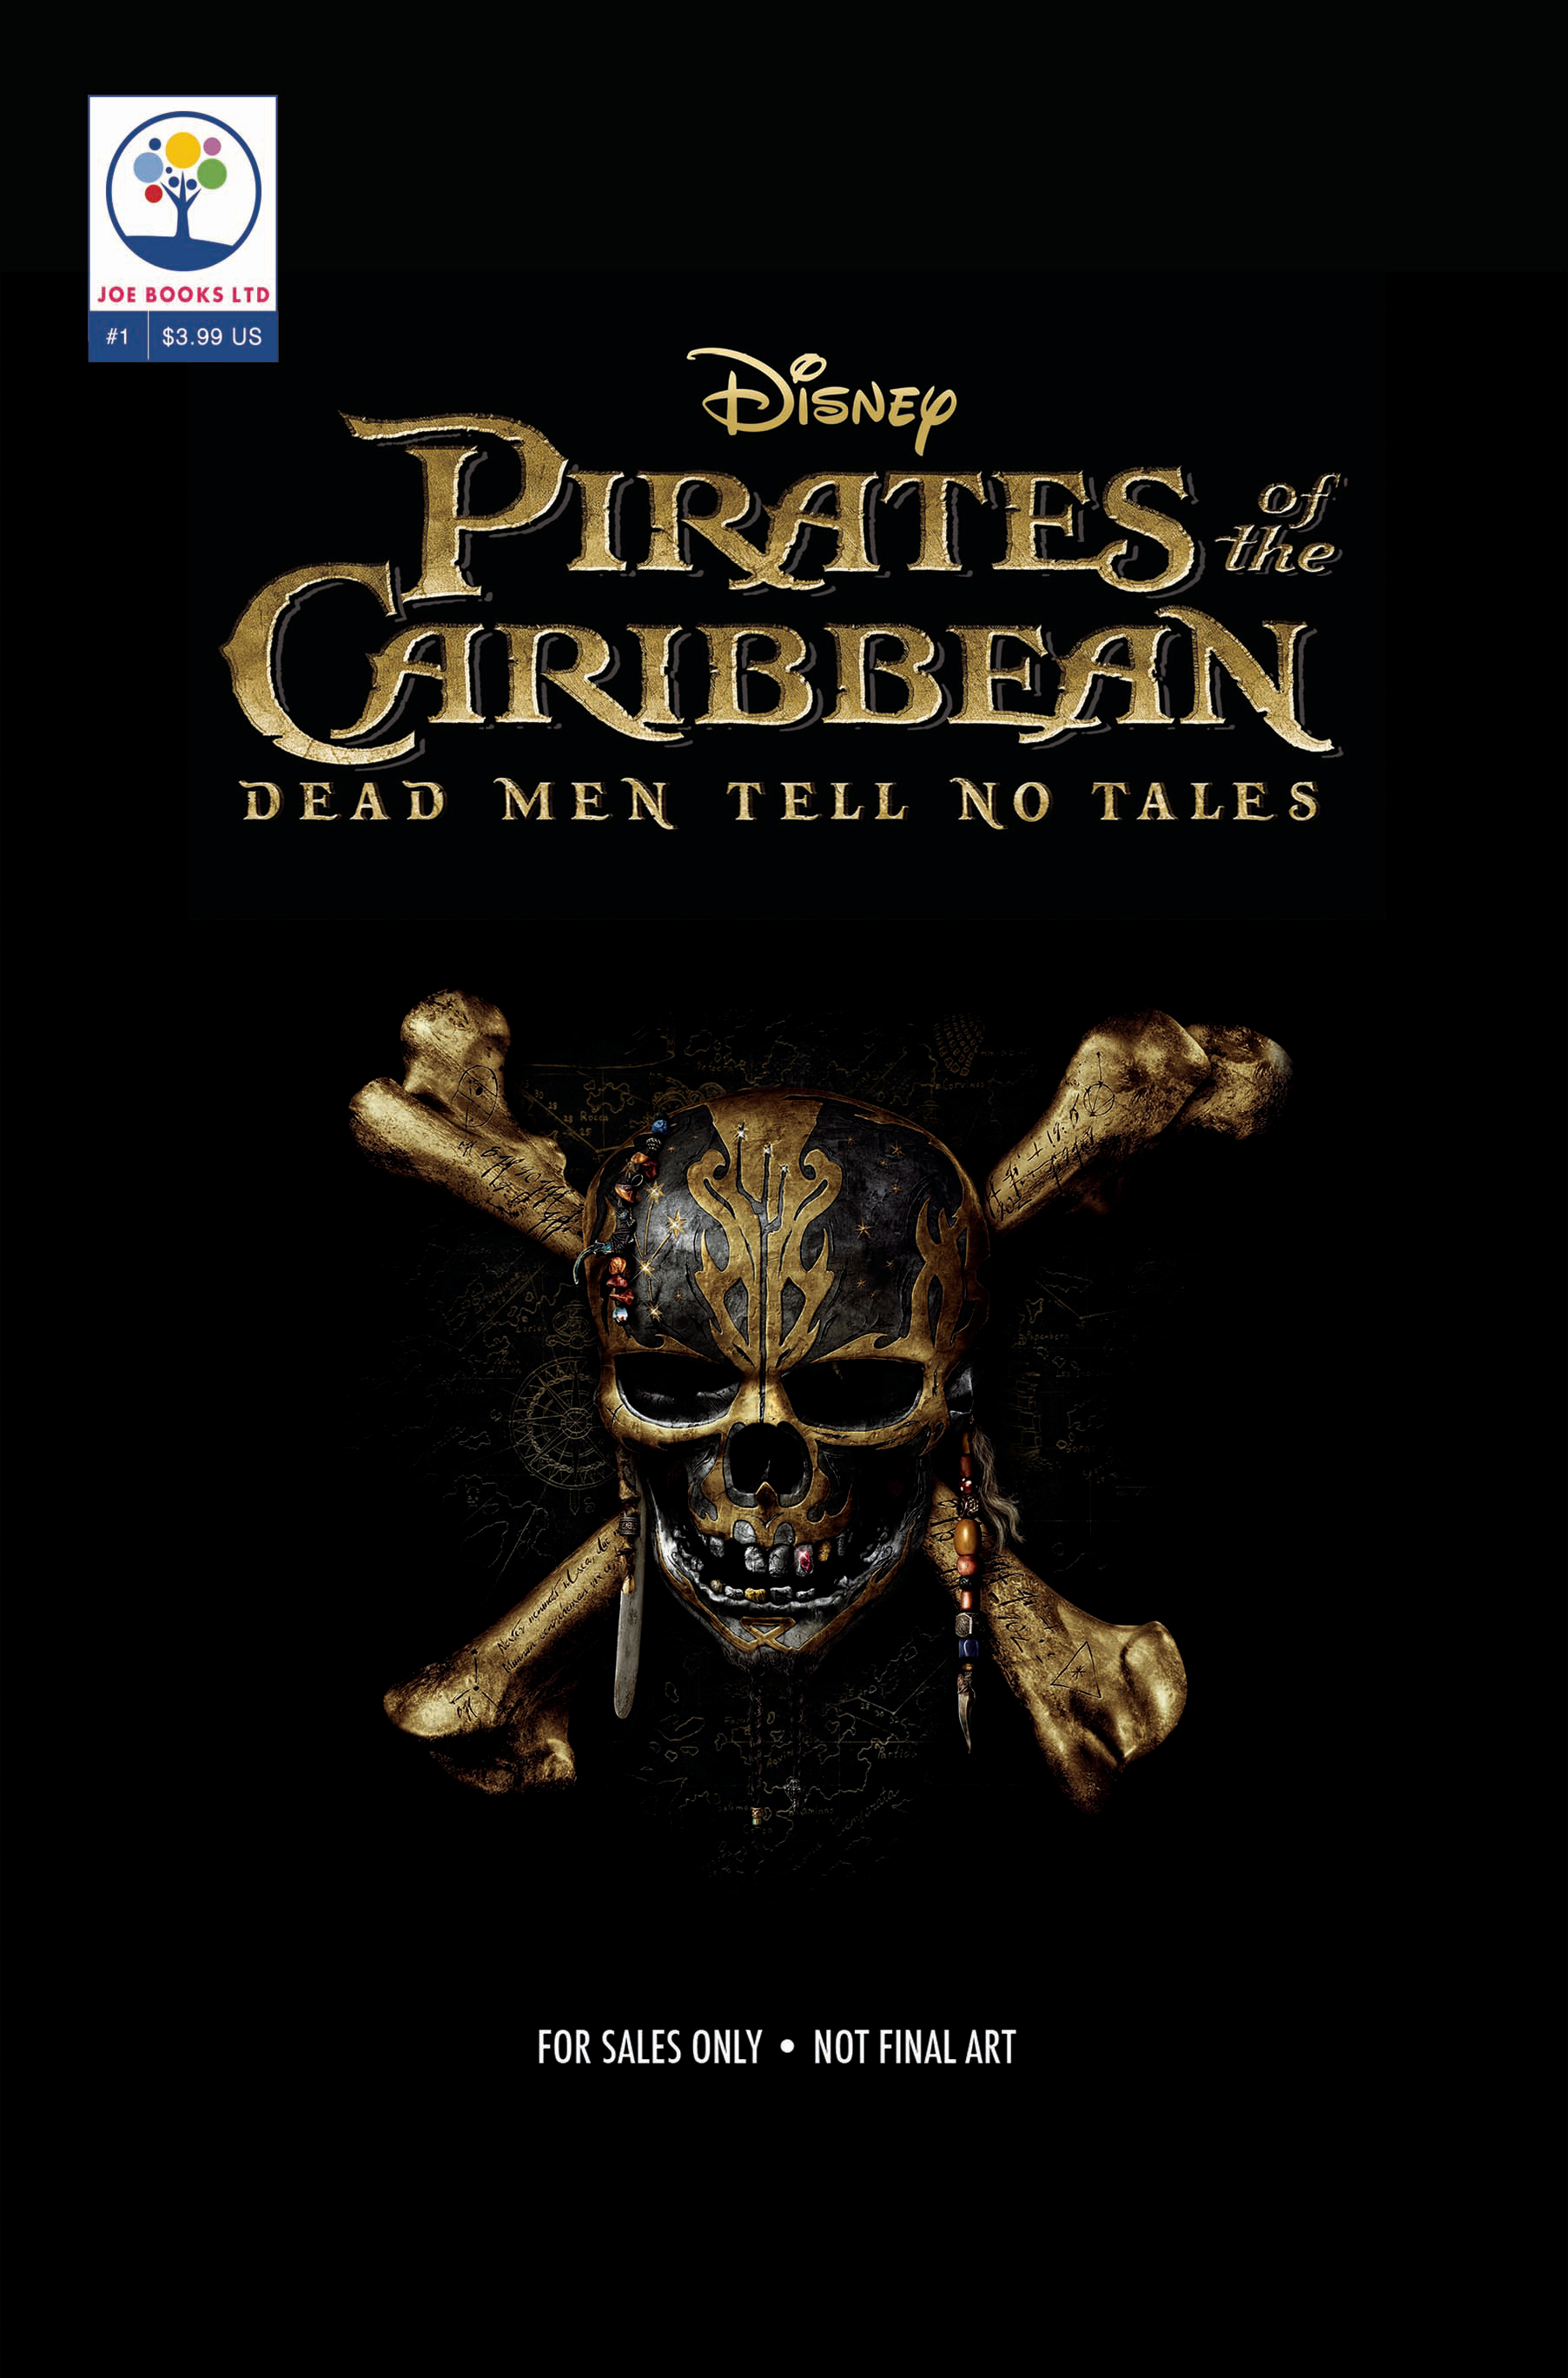 AT THE MOVIES #1 DISNEY PIRATES CARIBBEAN DEAD MEN TALES